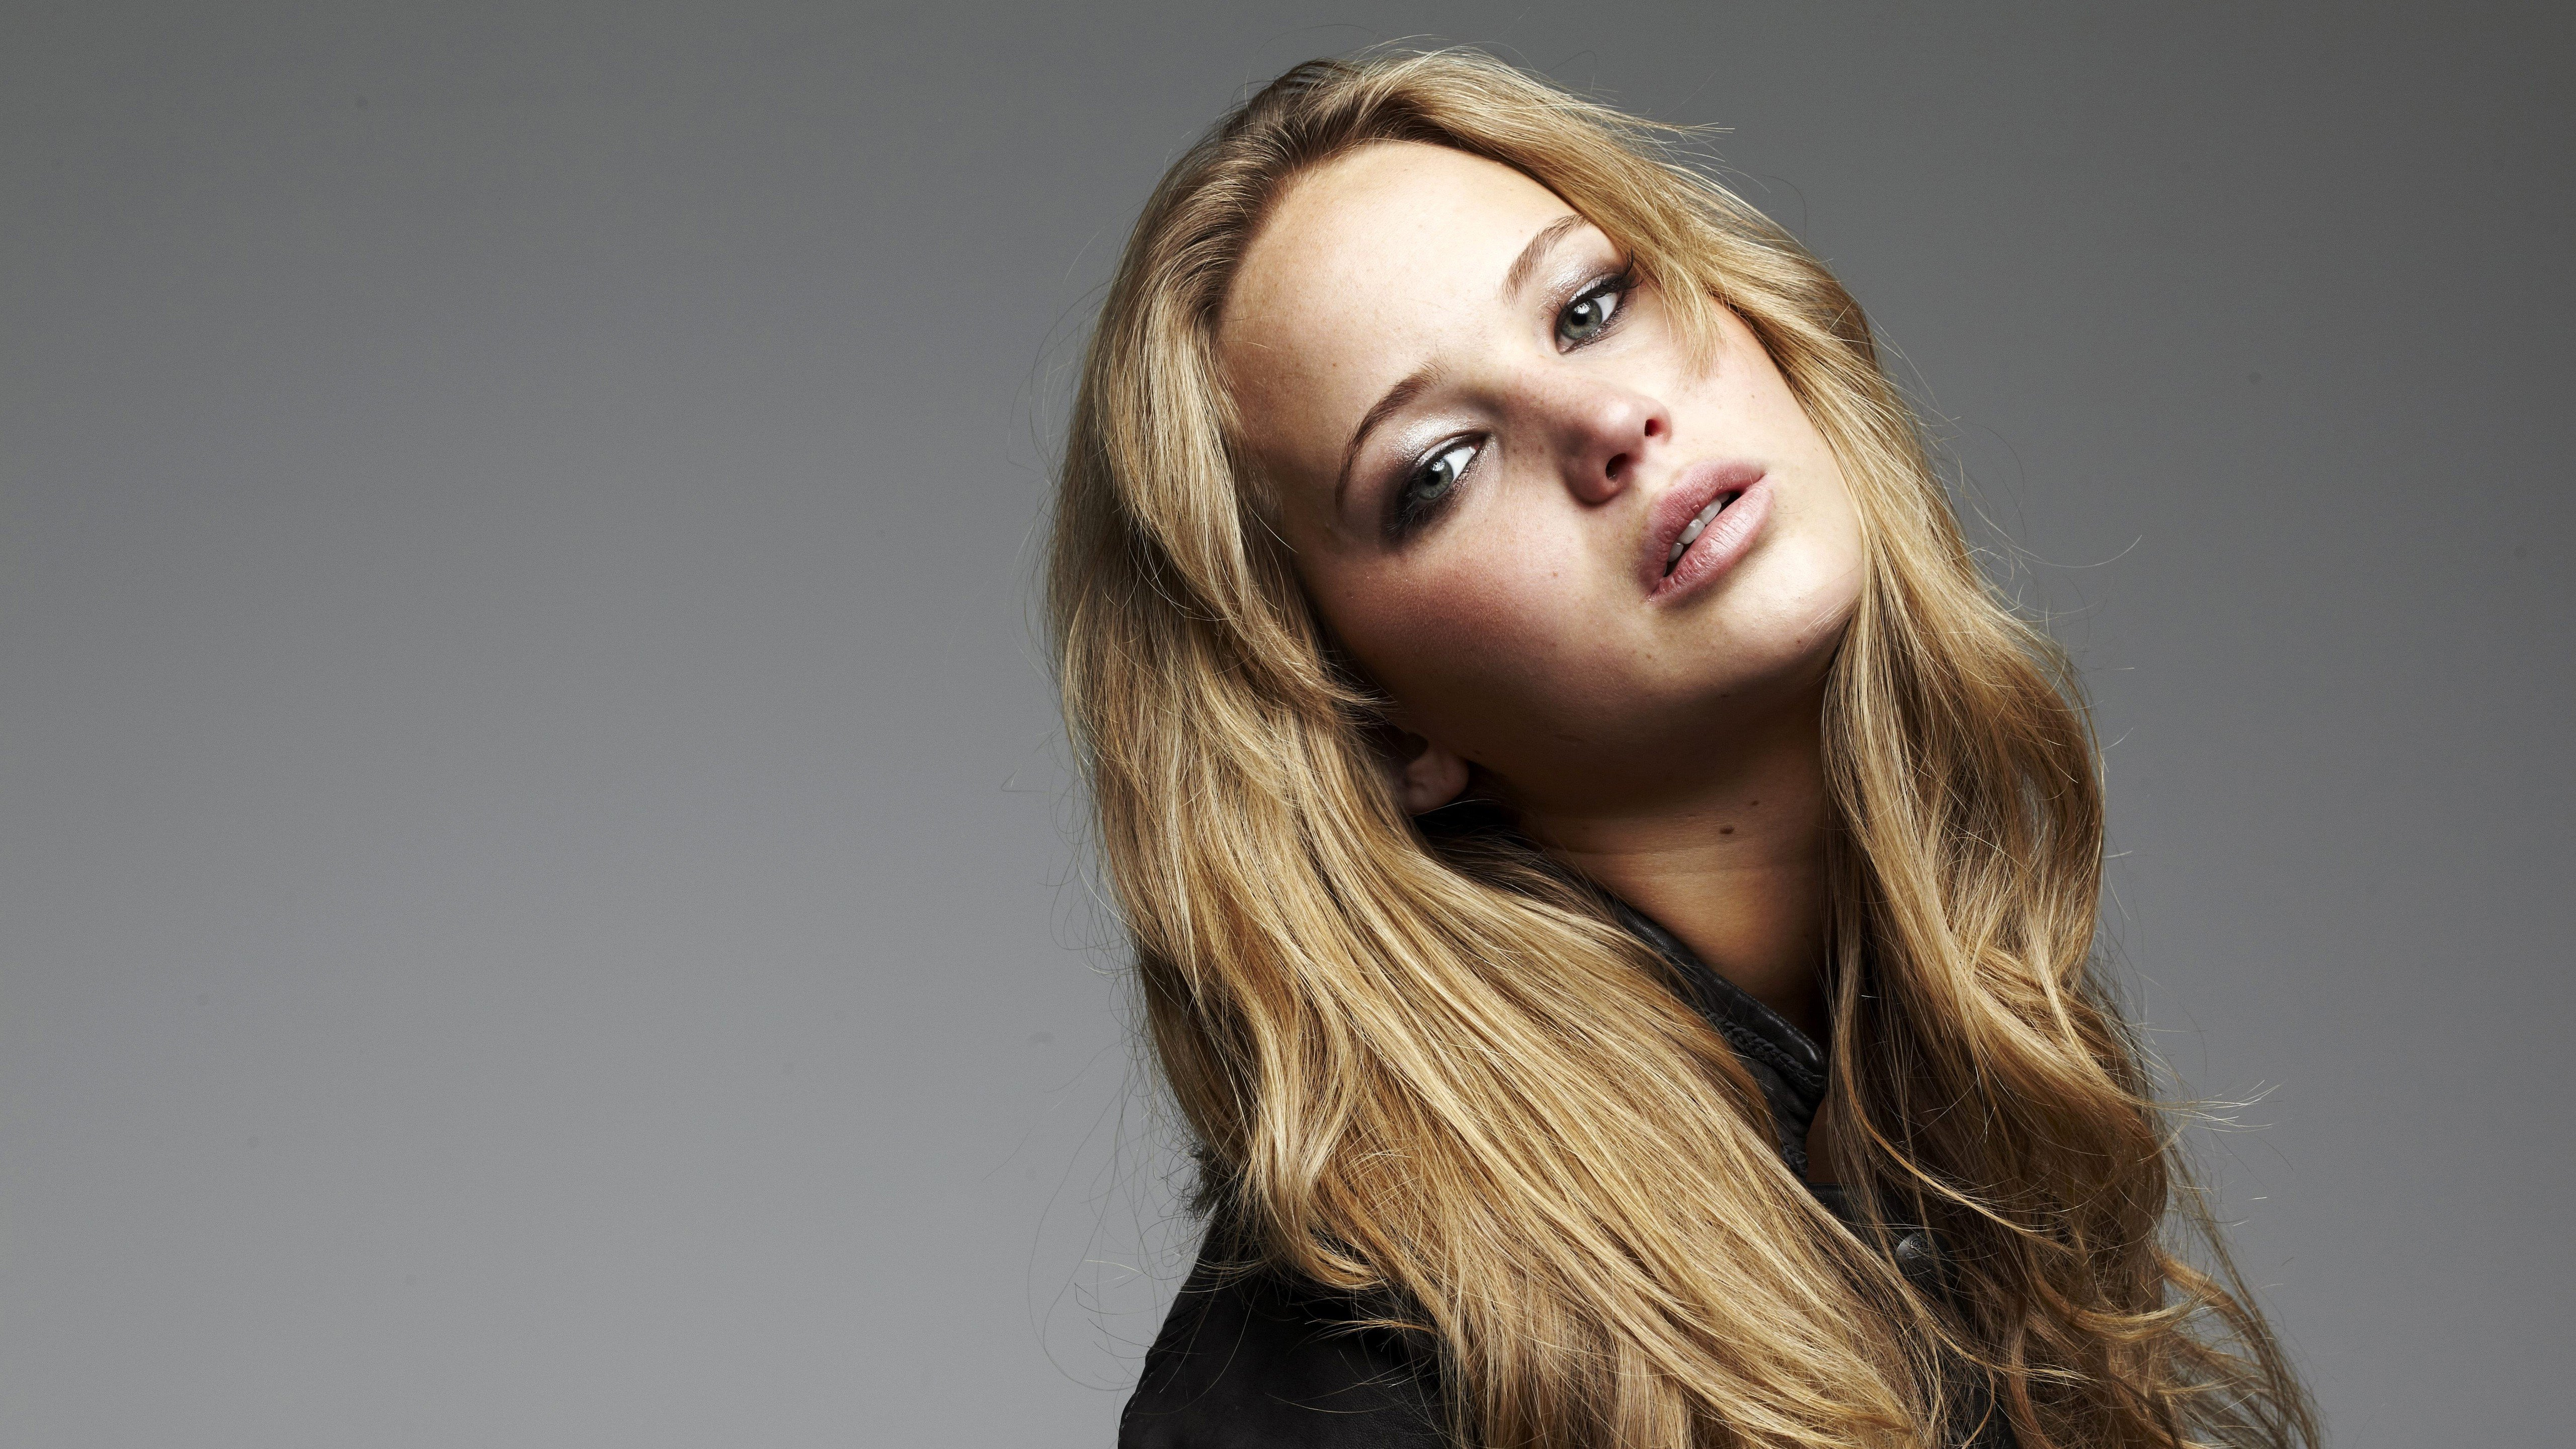 2016 Jennifer Lawrence Hd Celebrities 4k Wallpapers Images